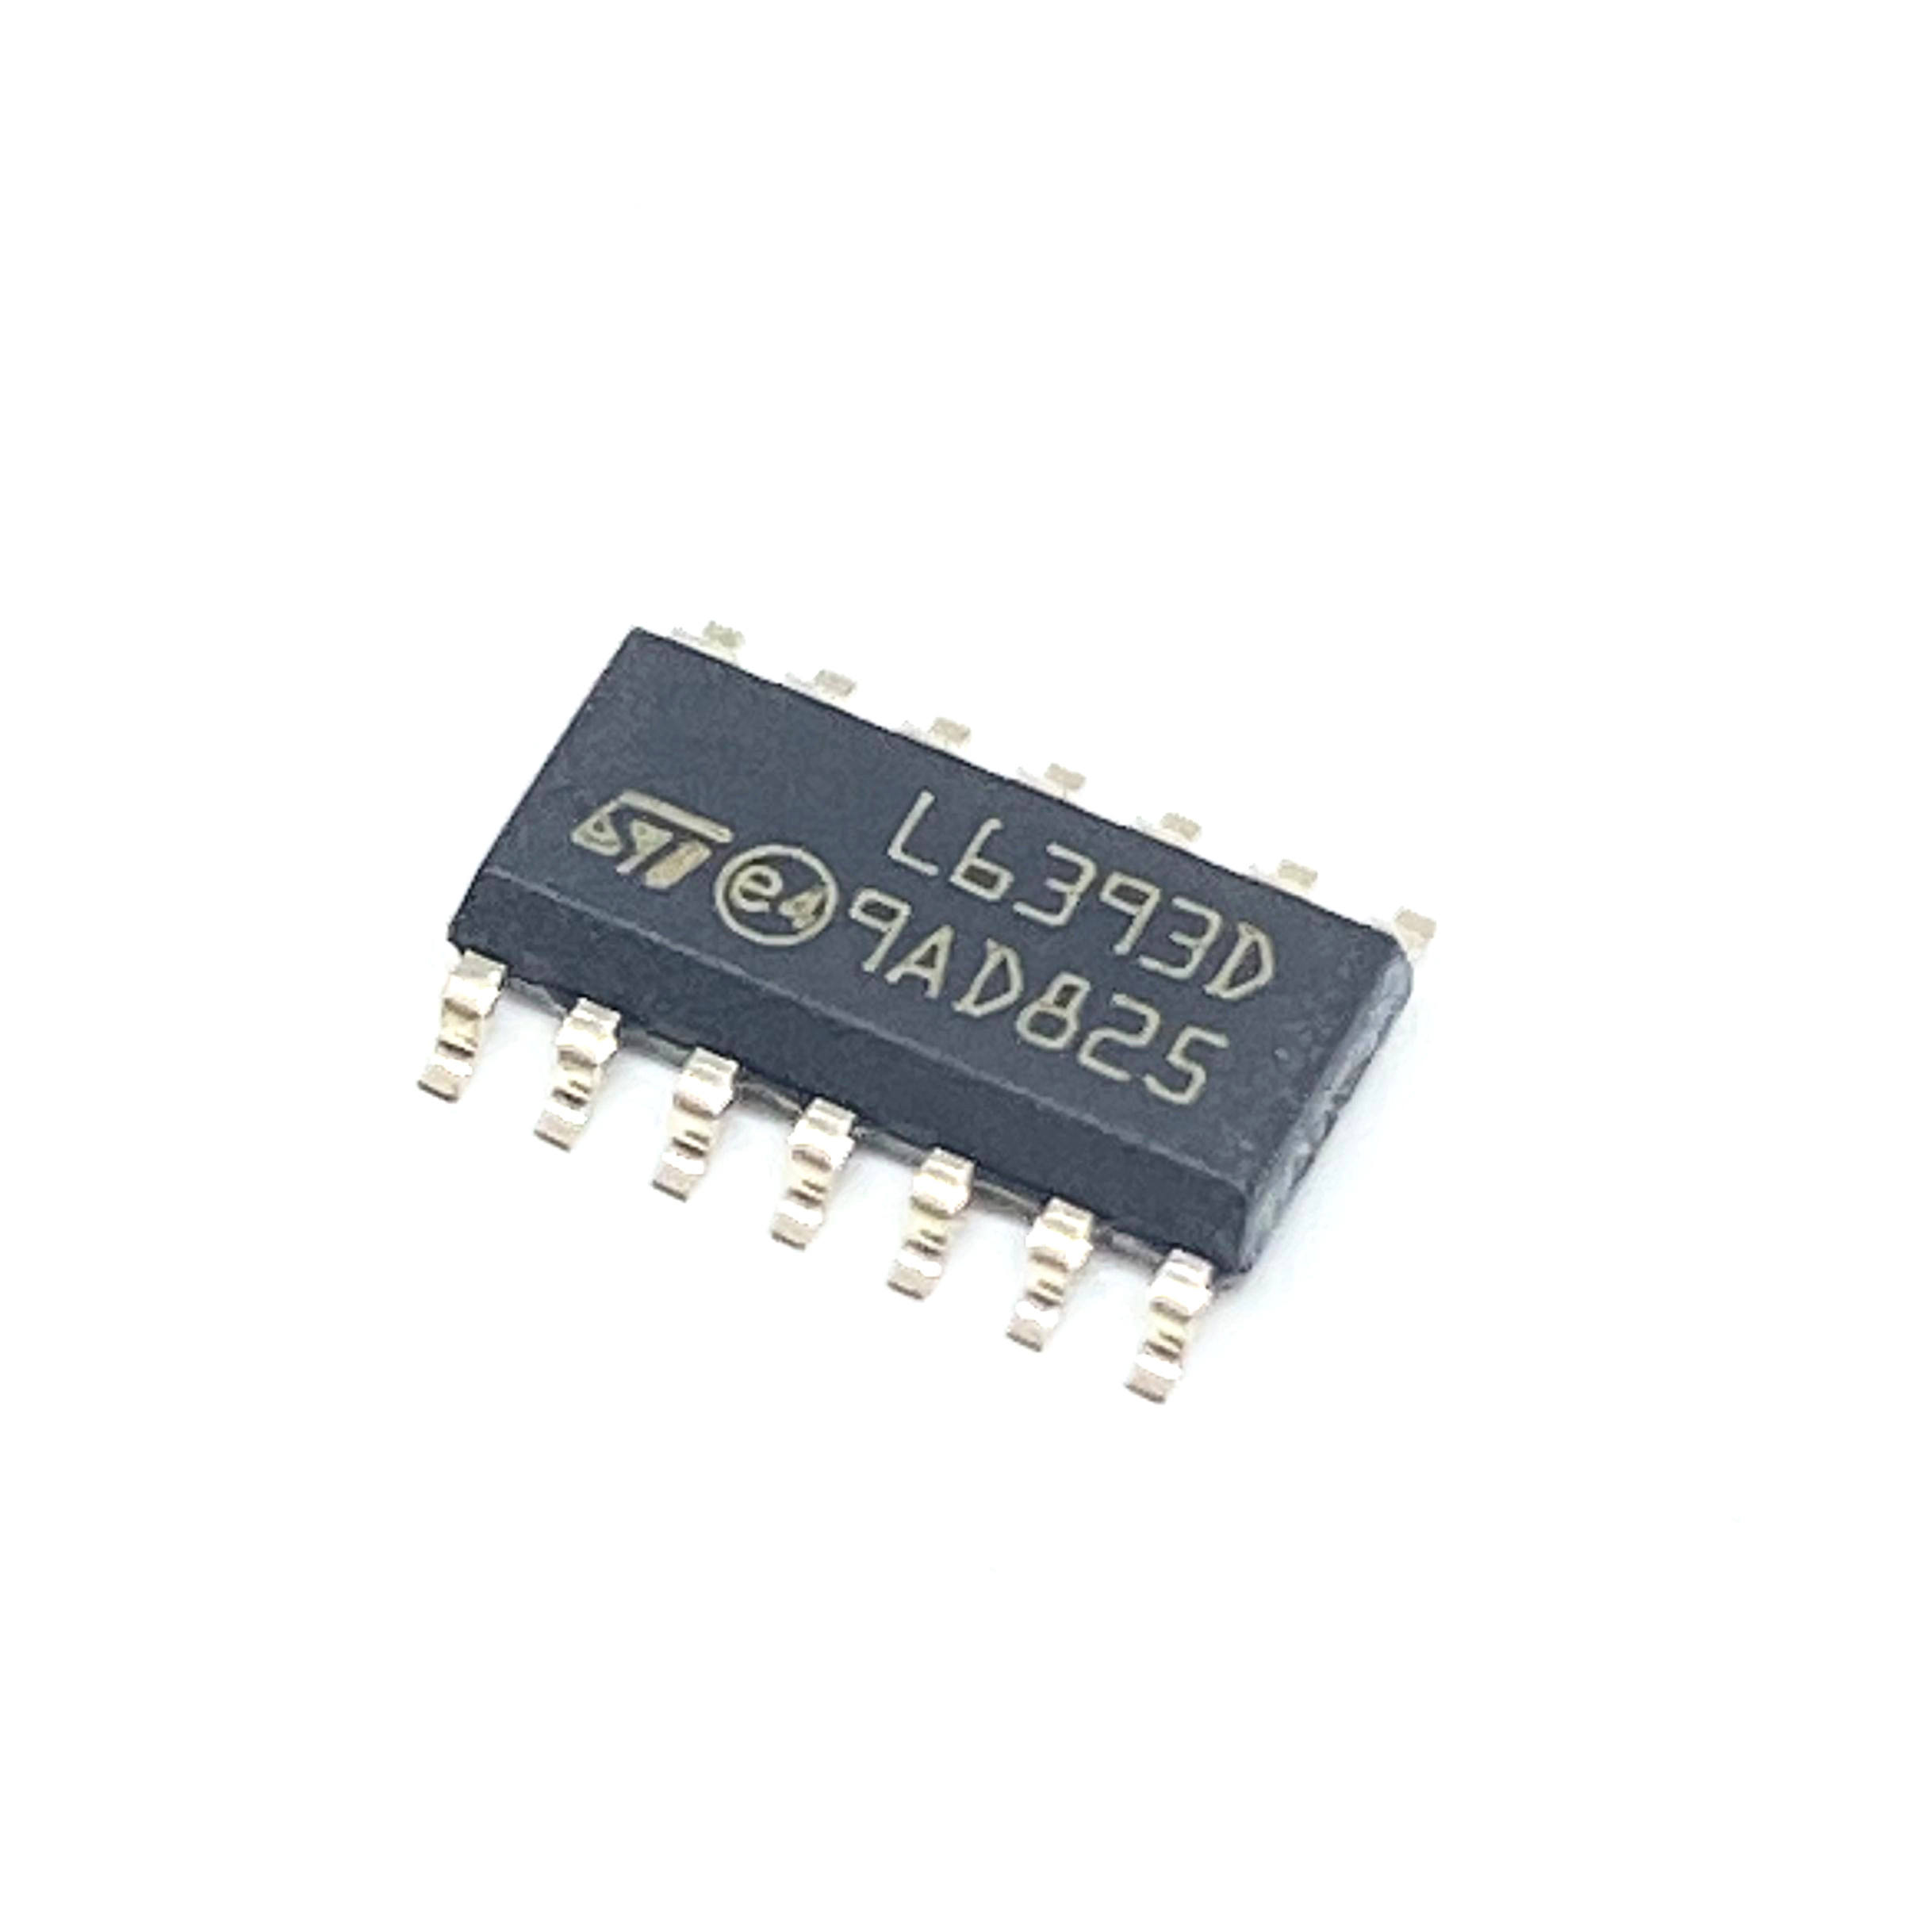 L6393DTR L6393D L6393 SOP14 Half bridge gate <span class=keywords><strong>driver</strong></span> chip nuovo originale